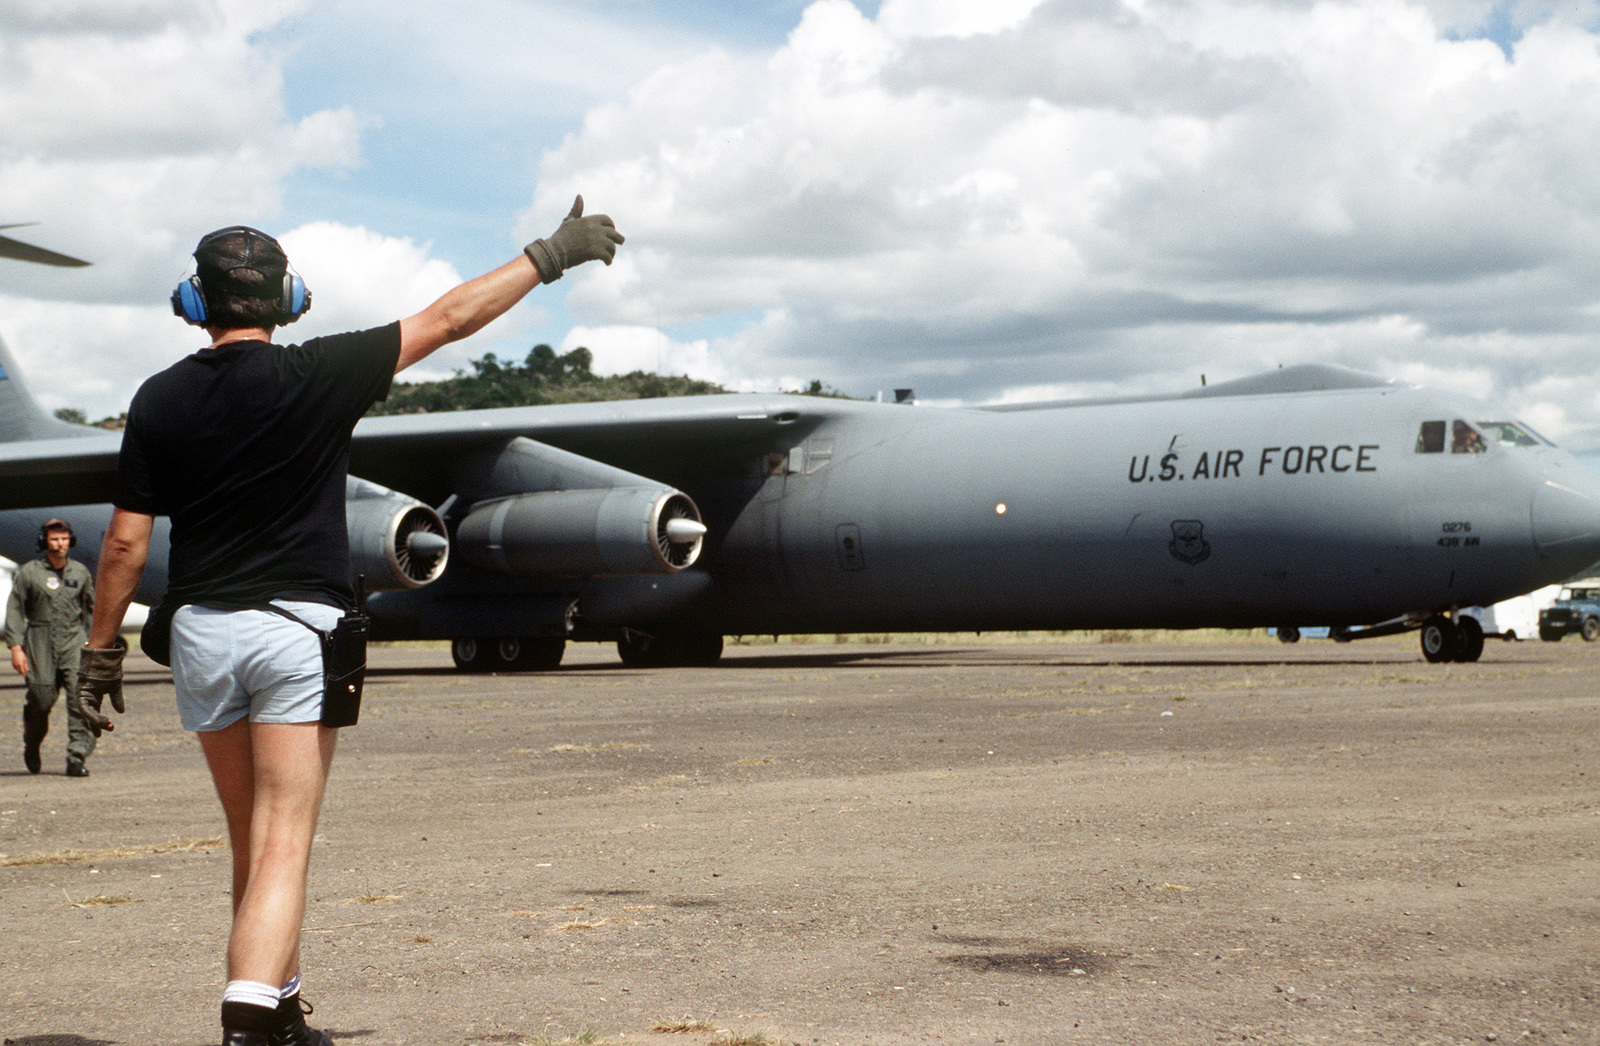 A ground crewmember directs a C-141B from the 438th Airlift Wing, McGuire Air Force Base, NJ, to a parking area on the flightline